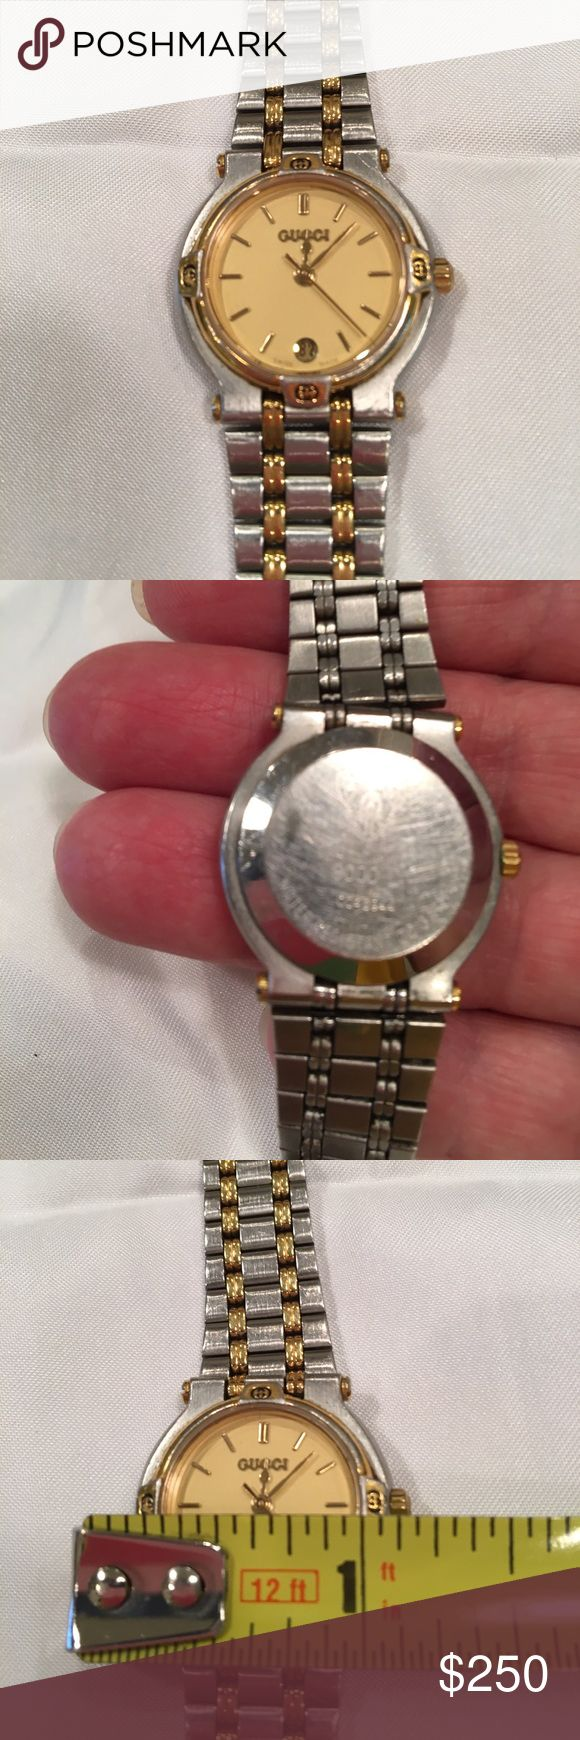 Ladies Gucci 9000L stainless steel watch Gucci 9000L two toned stainless steel watch. Water resistant.Serial # 004594. Good used condition. No scratches on face. Scratches on back. Battery replaced 7/10. Works perfectly ❗️❗️ Gucci Accessories Watches